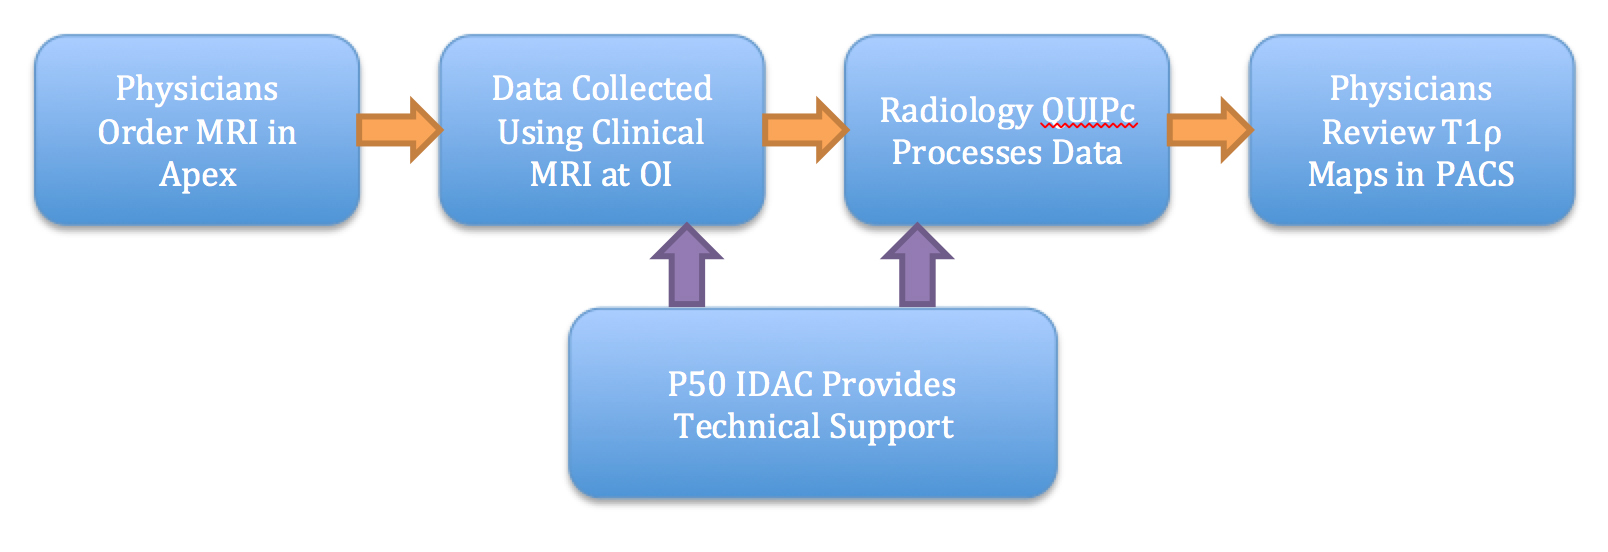 Clinical Translation Of Cartilage Tρ Imaging Center Of Research - Us maps that can be color coded